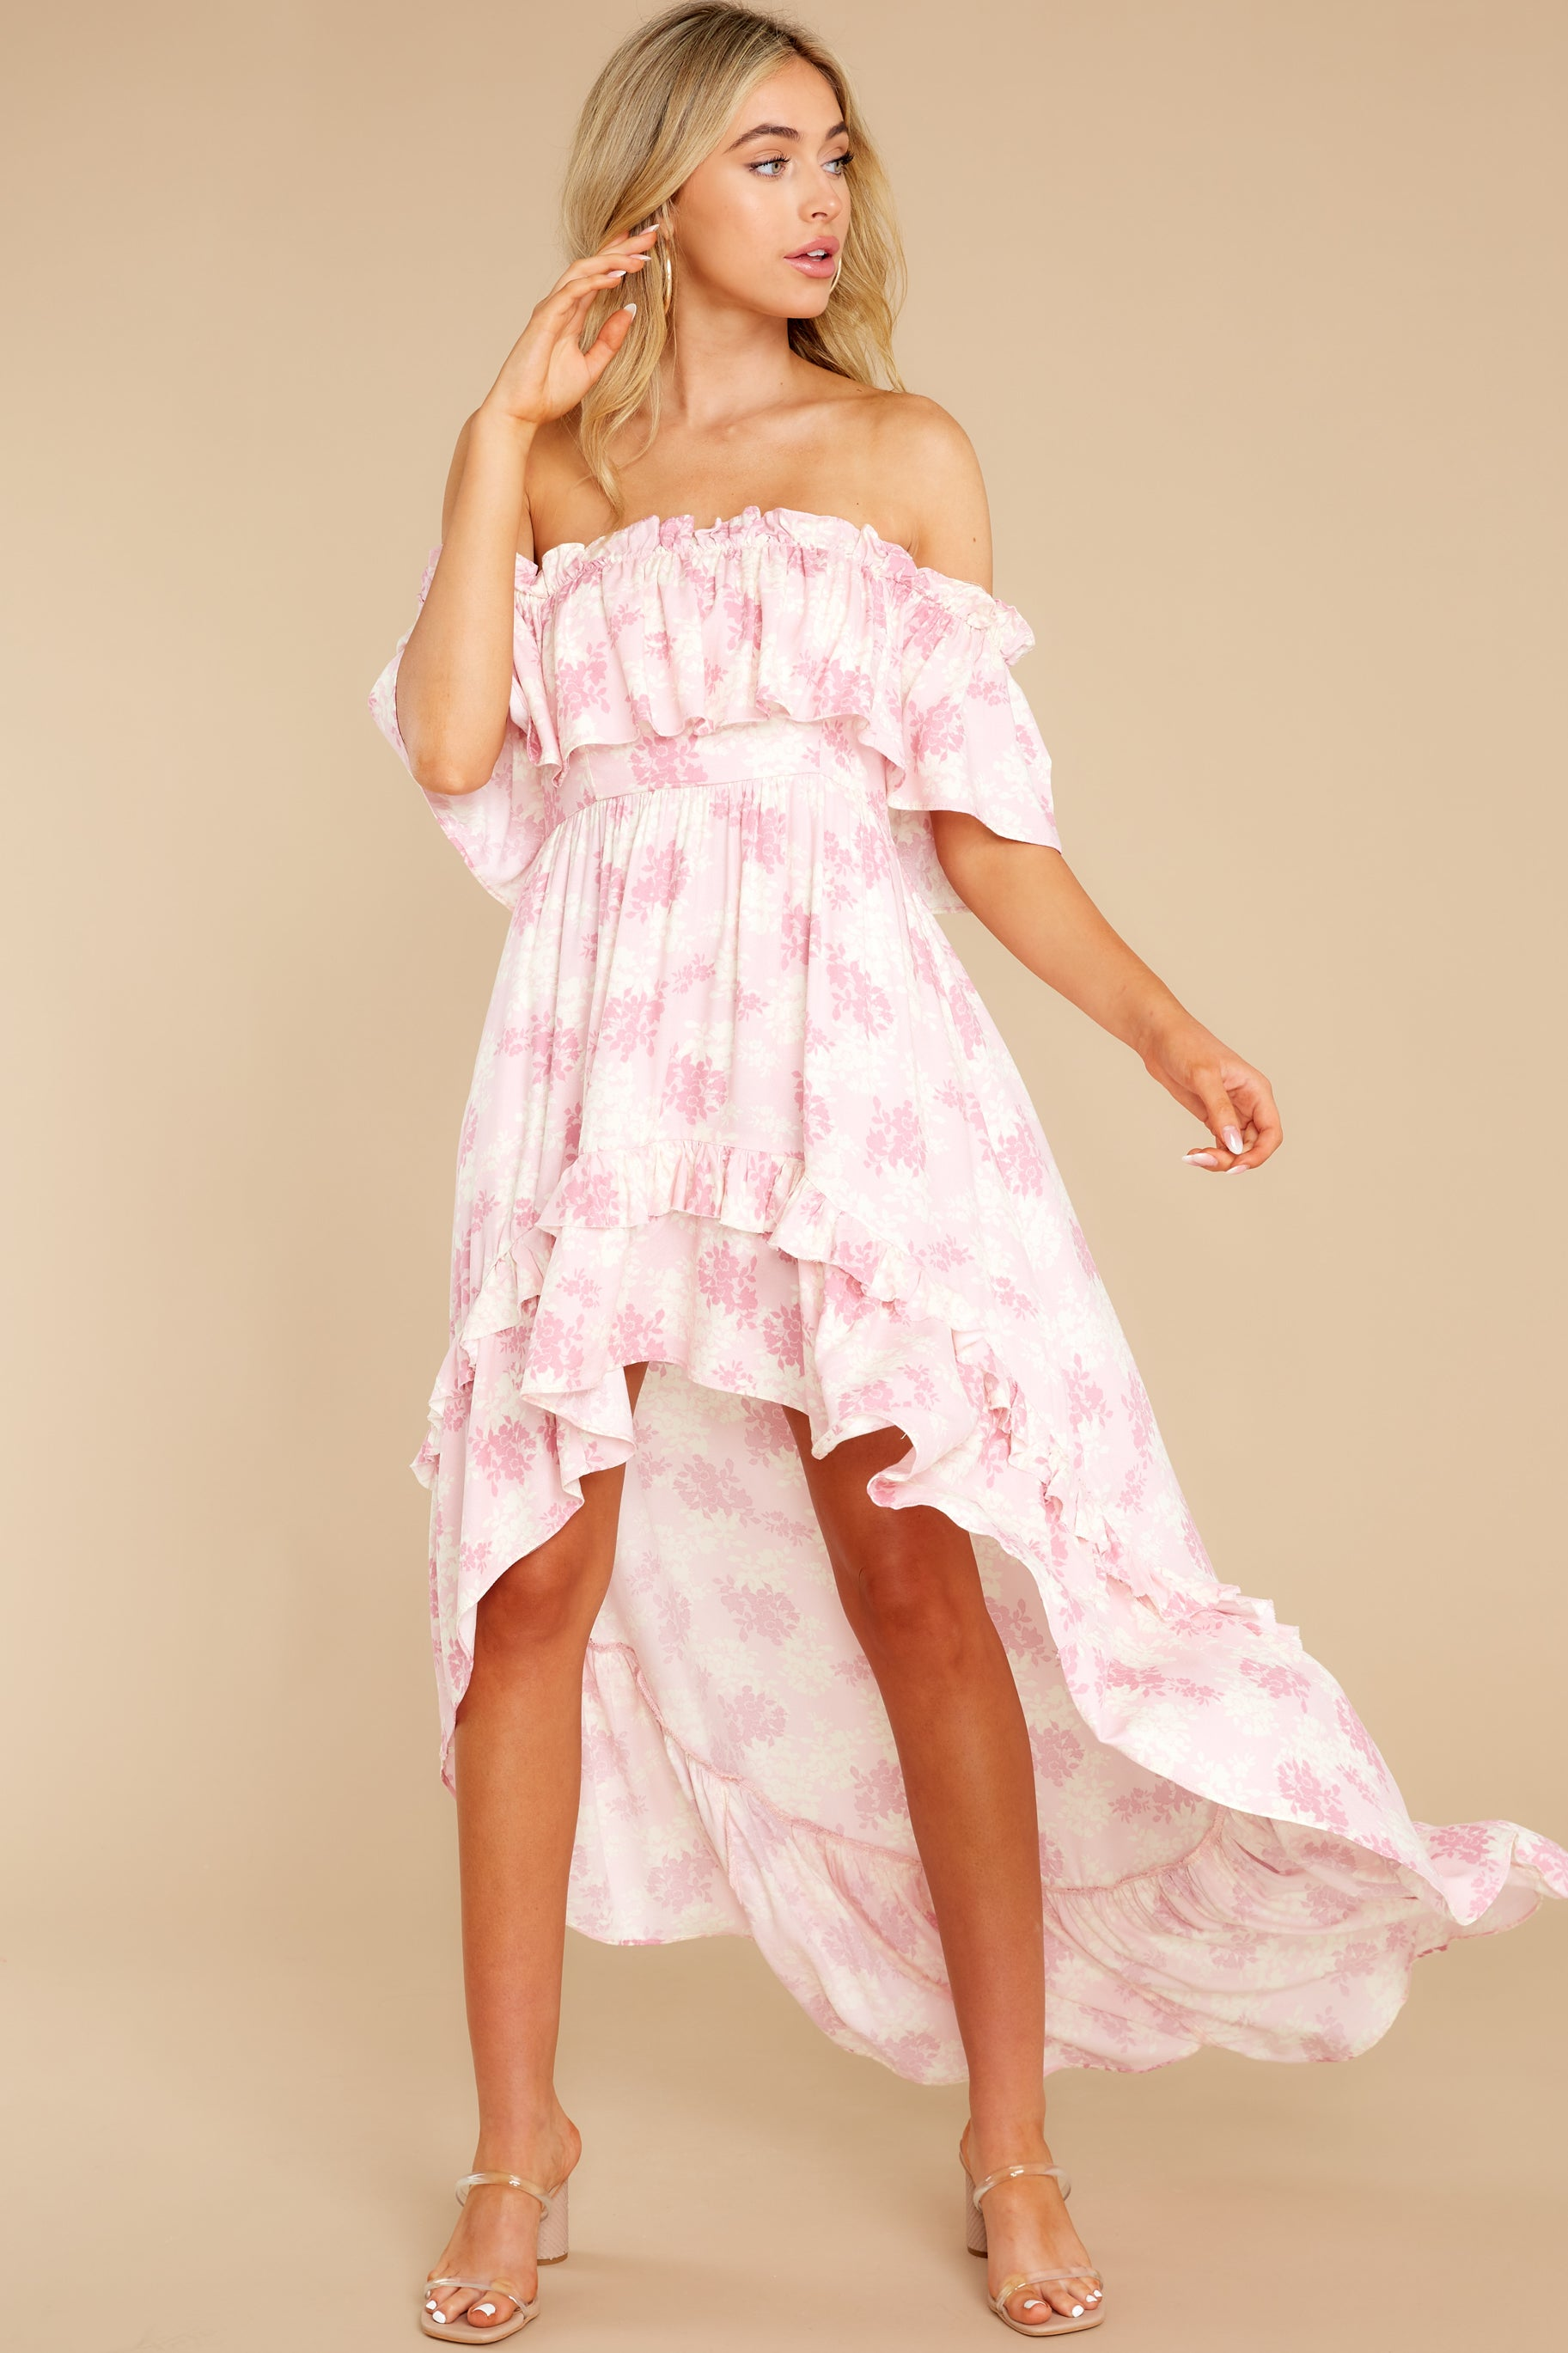 5 Instant Romance Pink Multi Print High-Low Dress at reddress.com